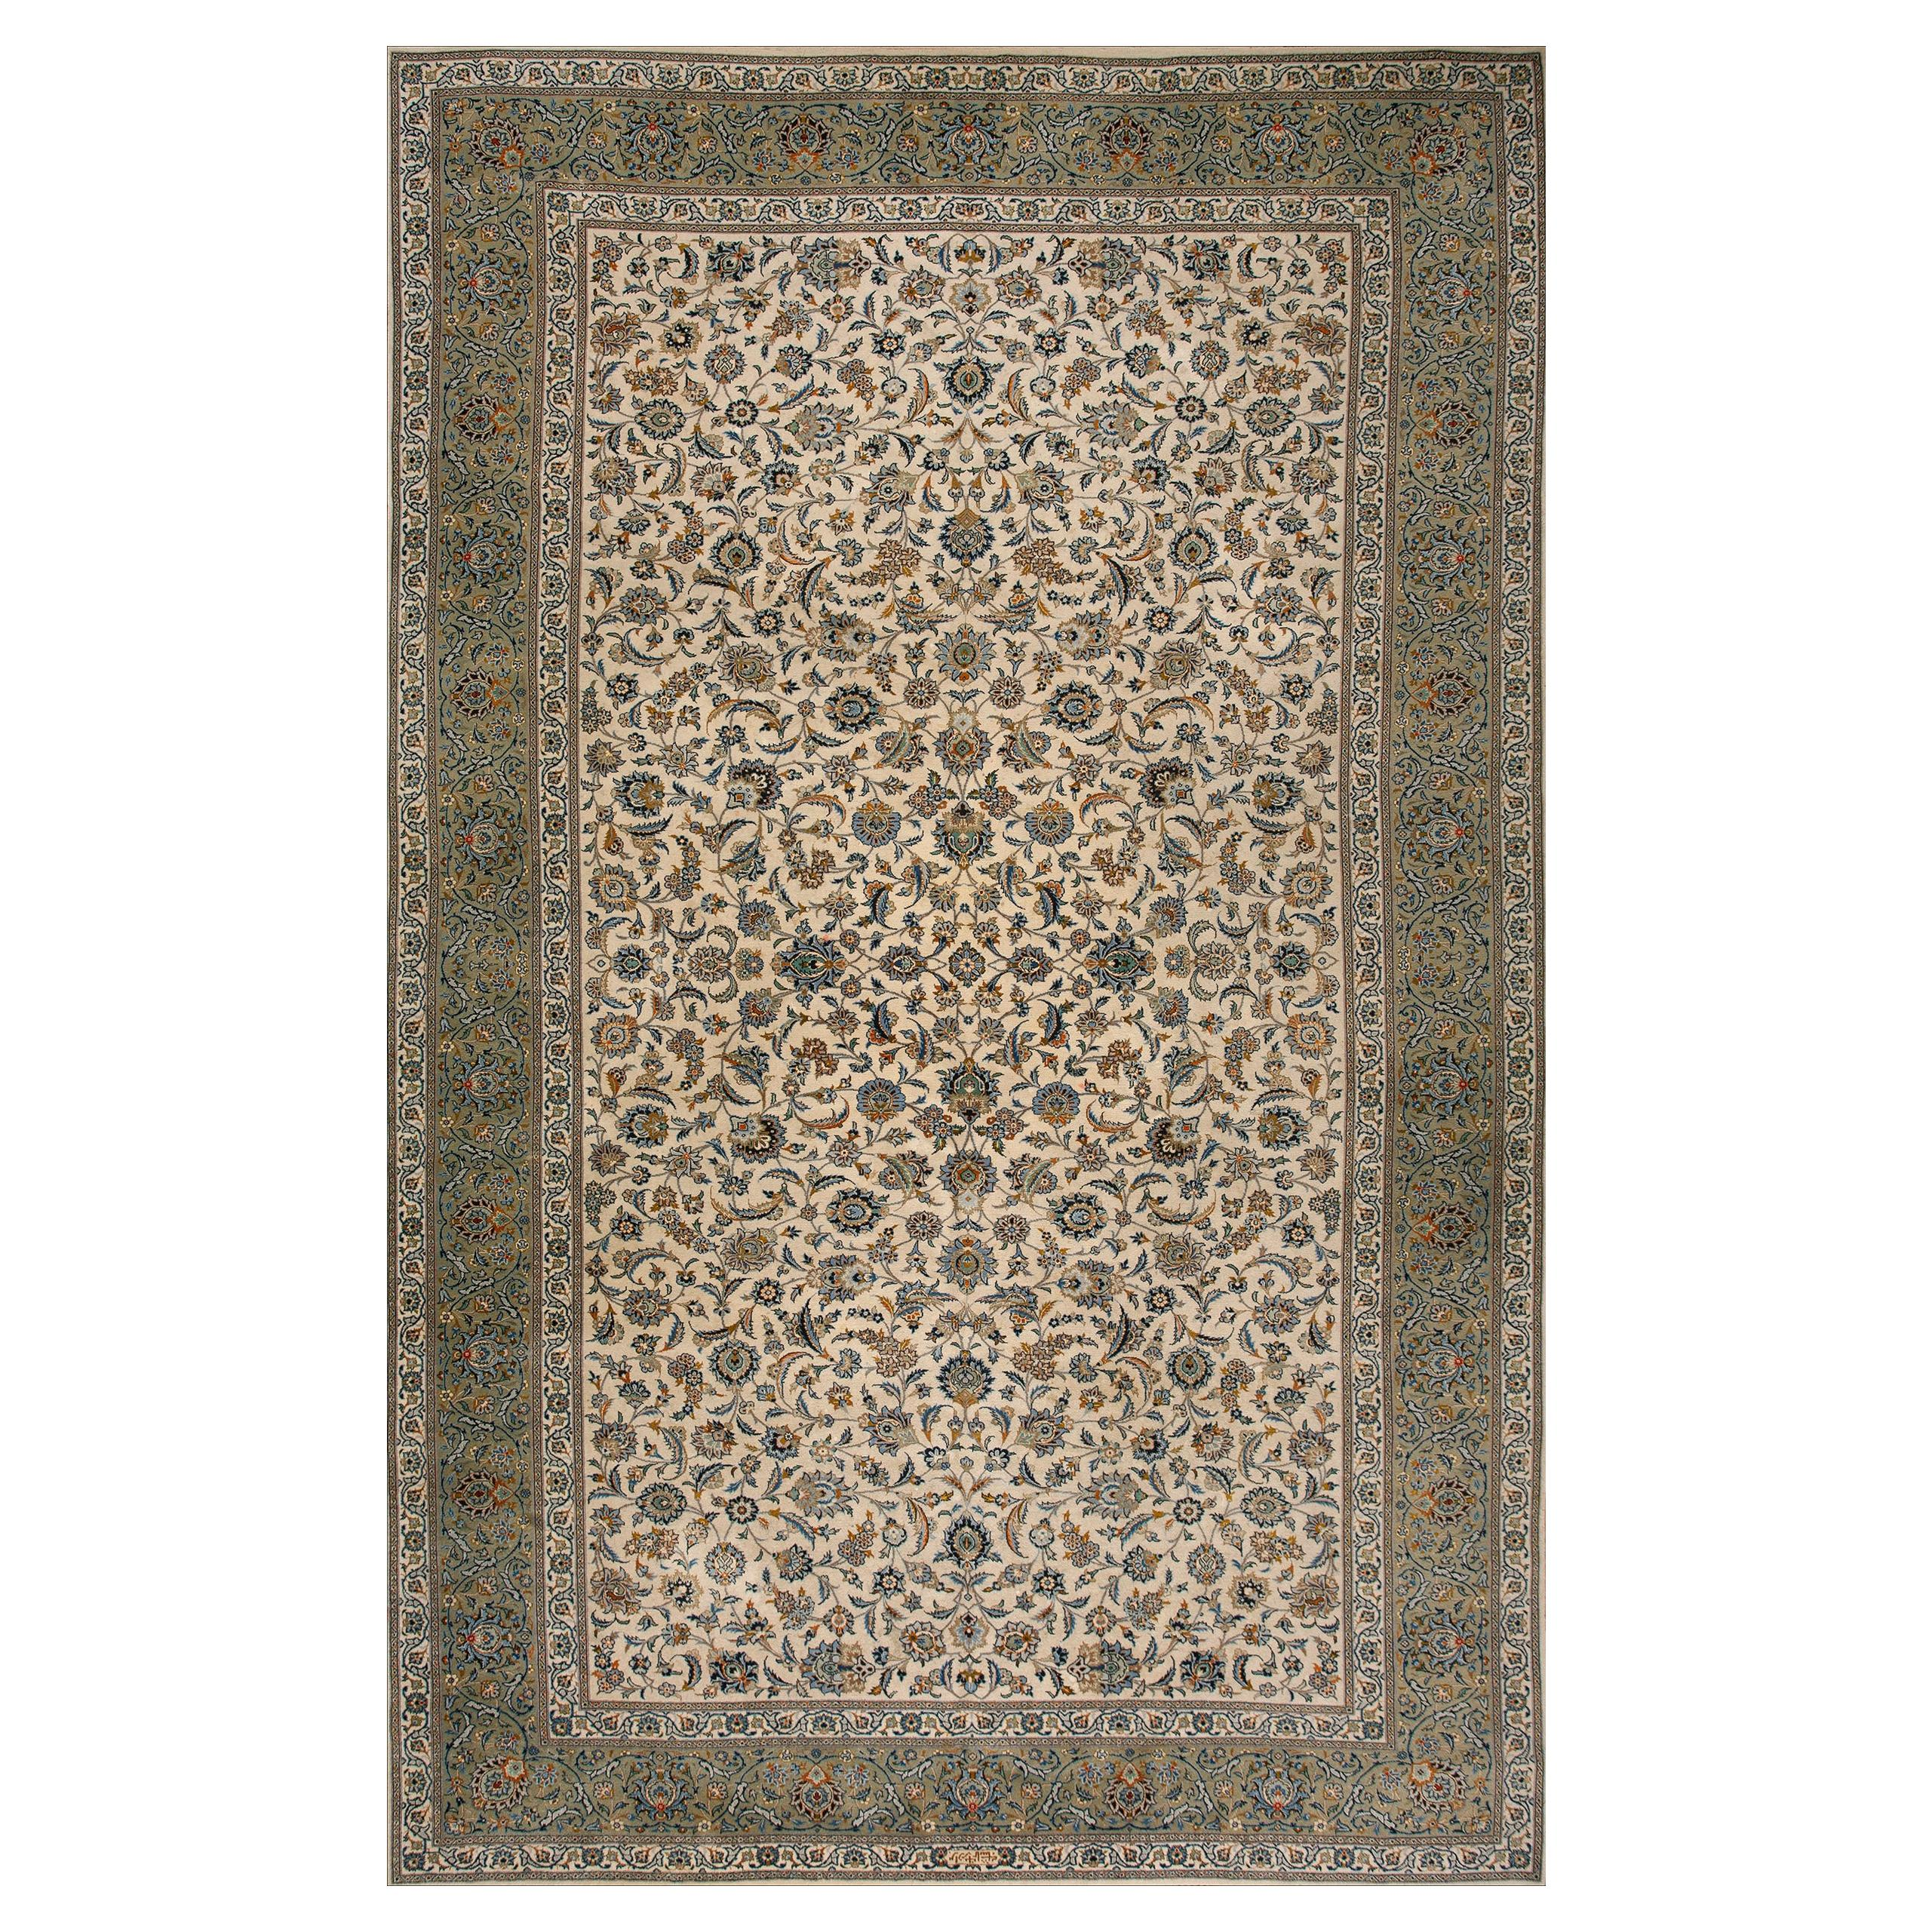 Bedroom Rugs and Carpets